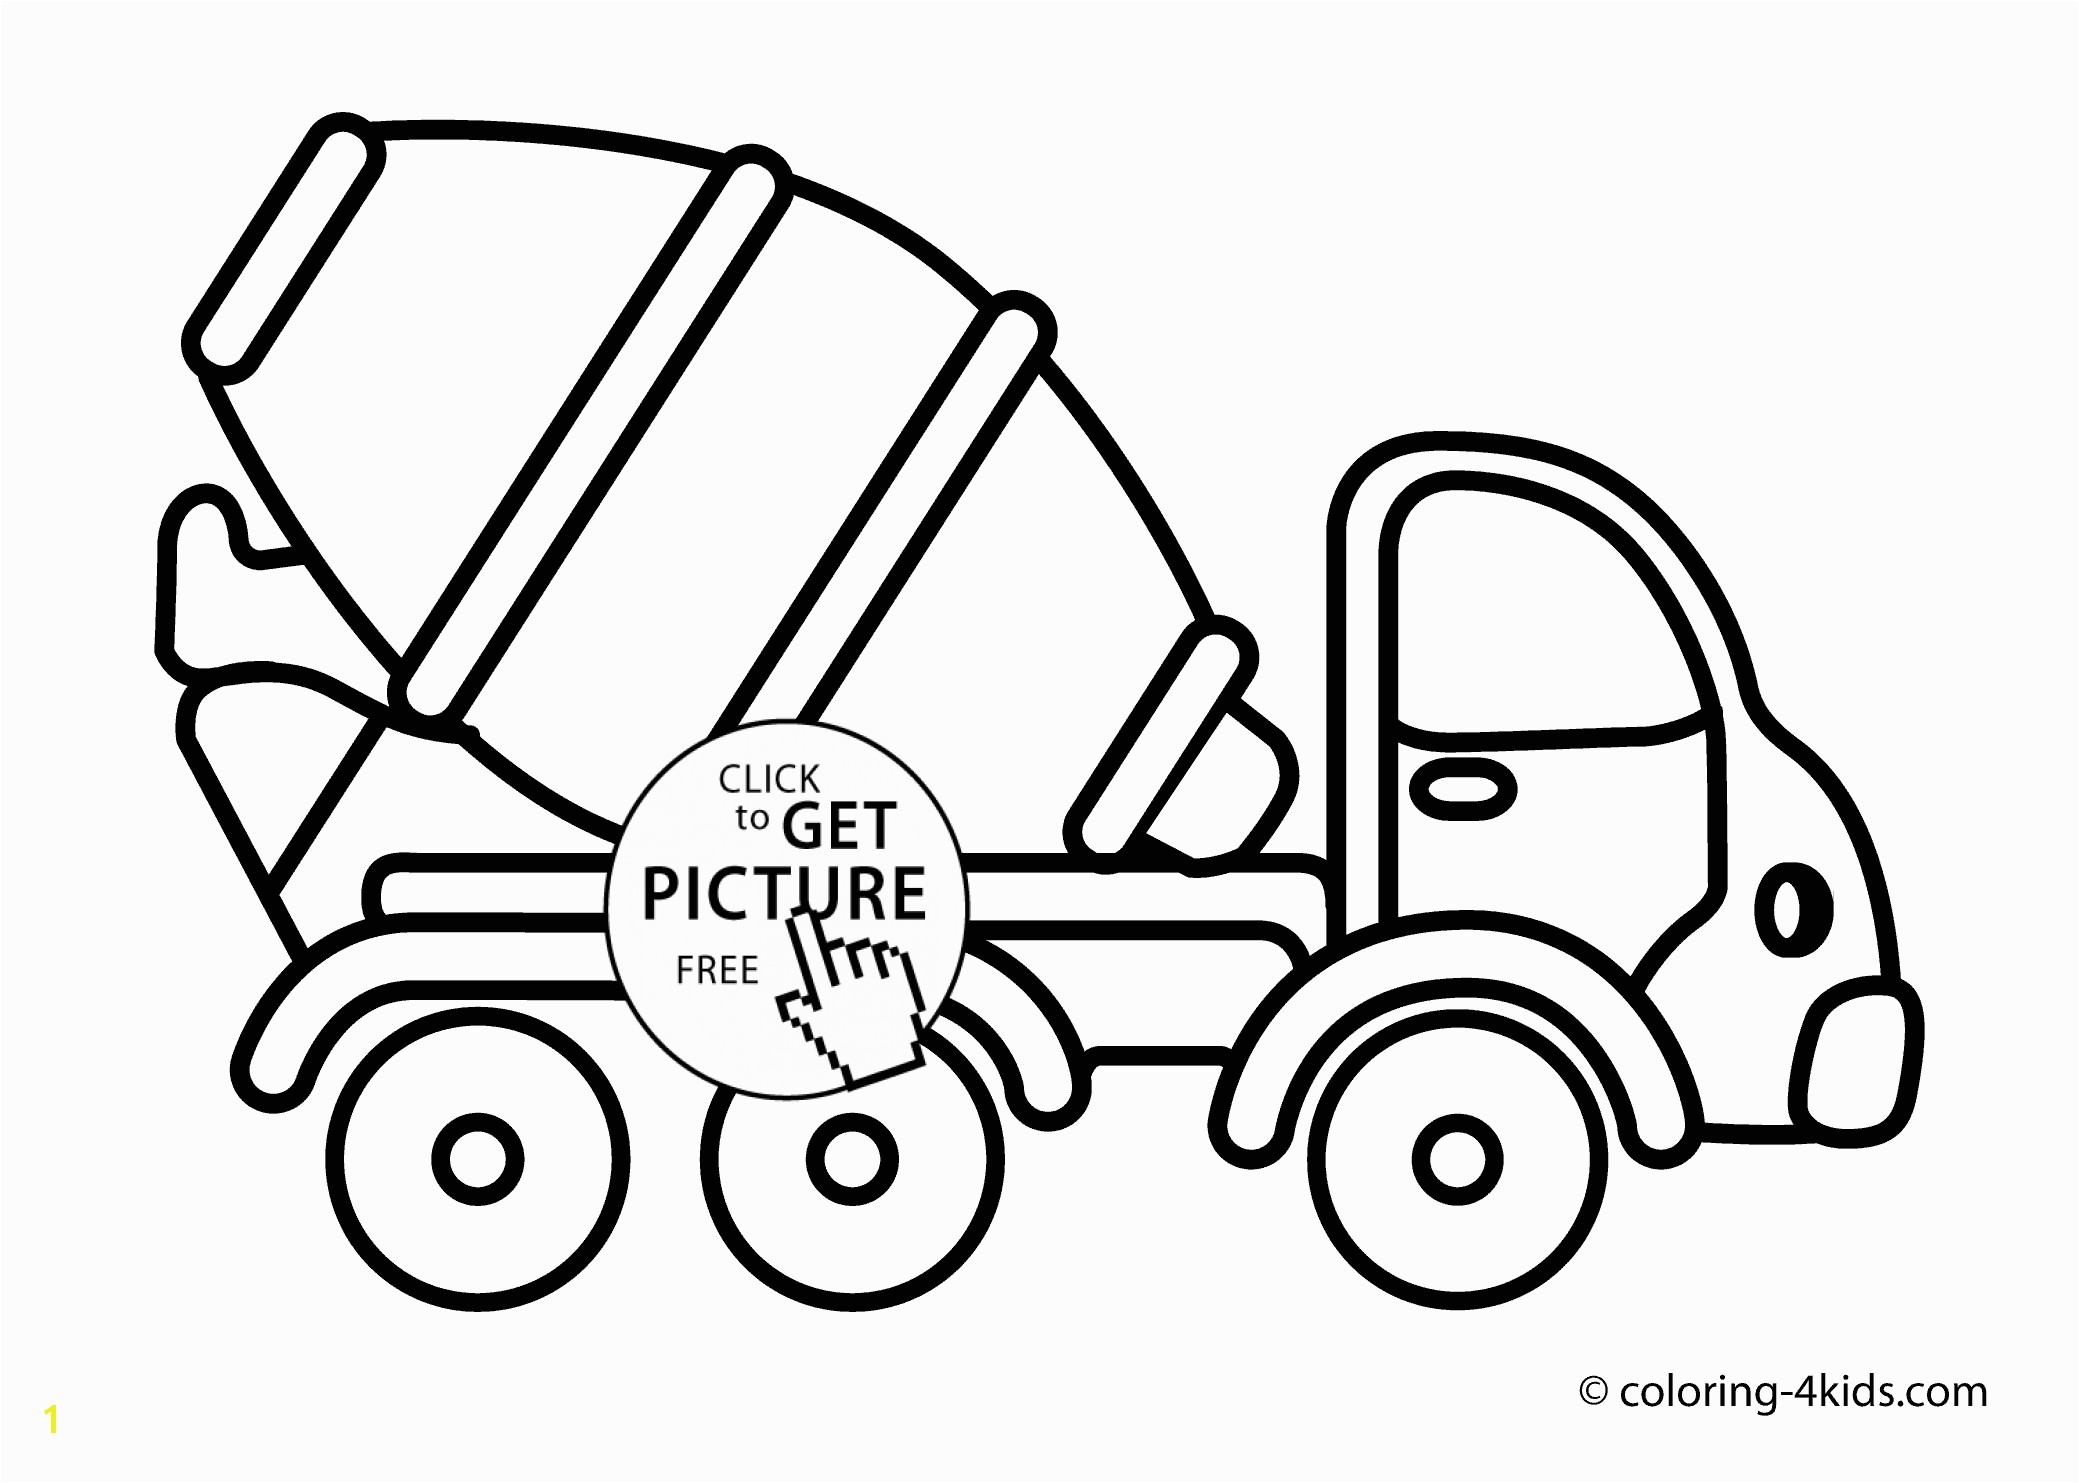 2079x1483 Cement mixer truck Transportation coloring pages concrete truck